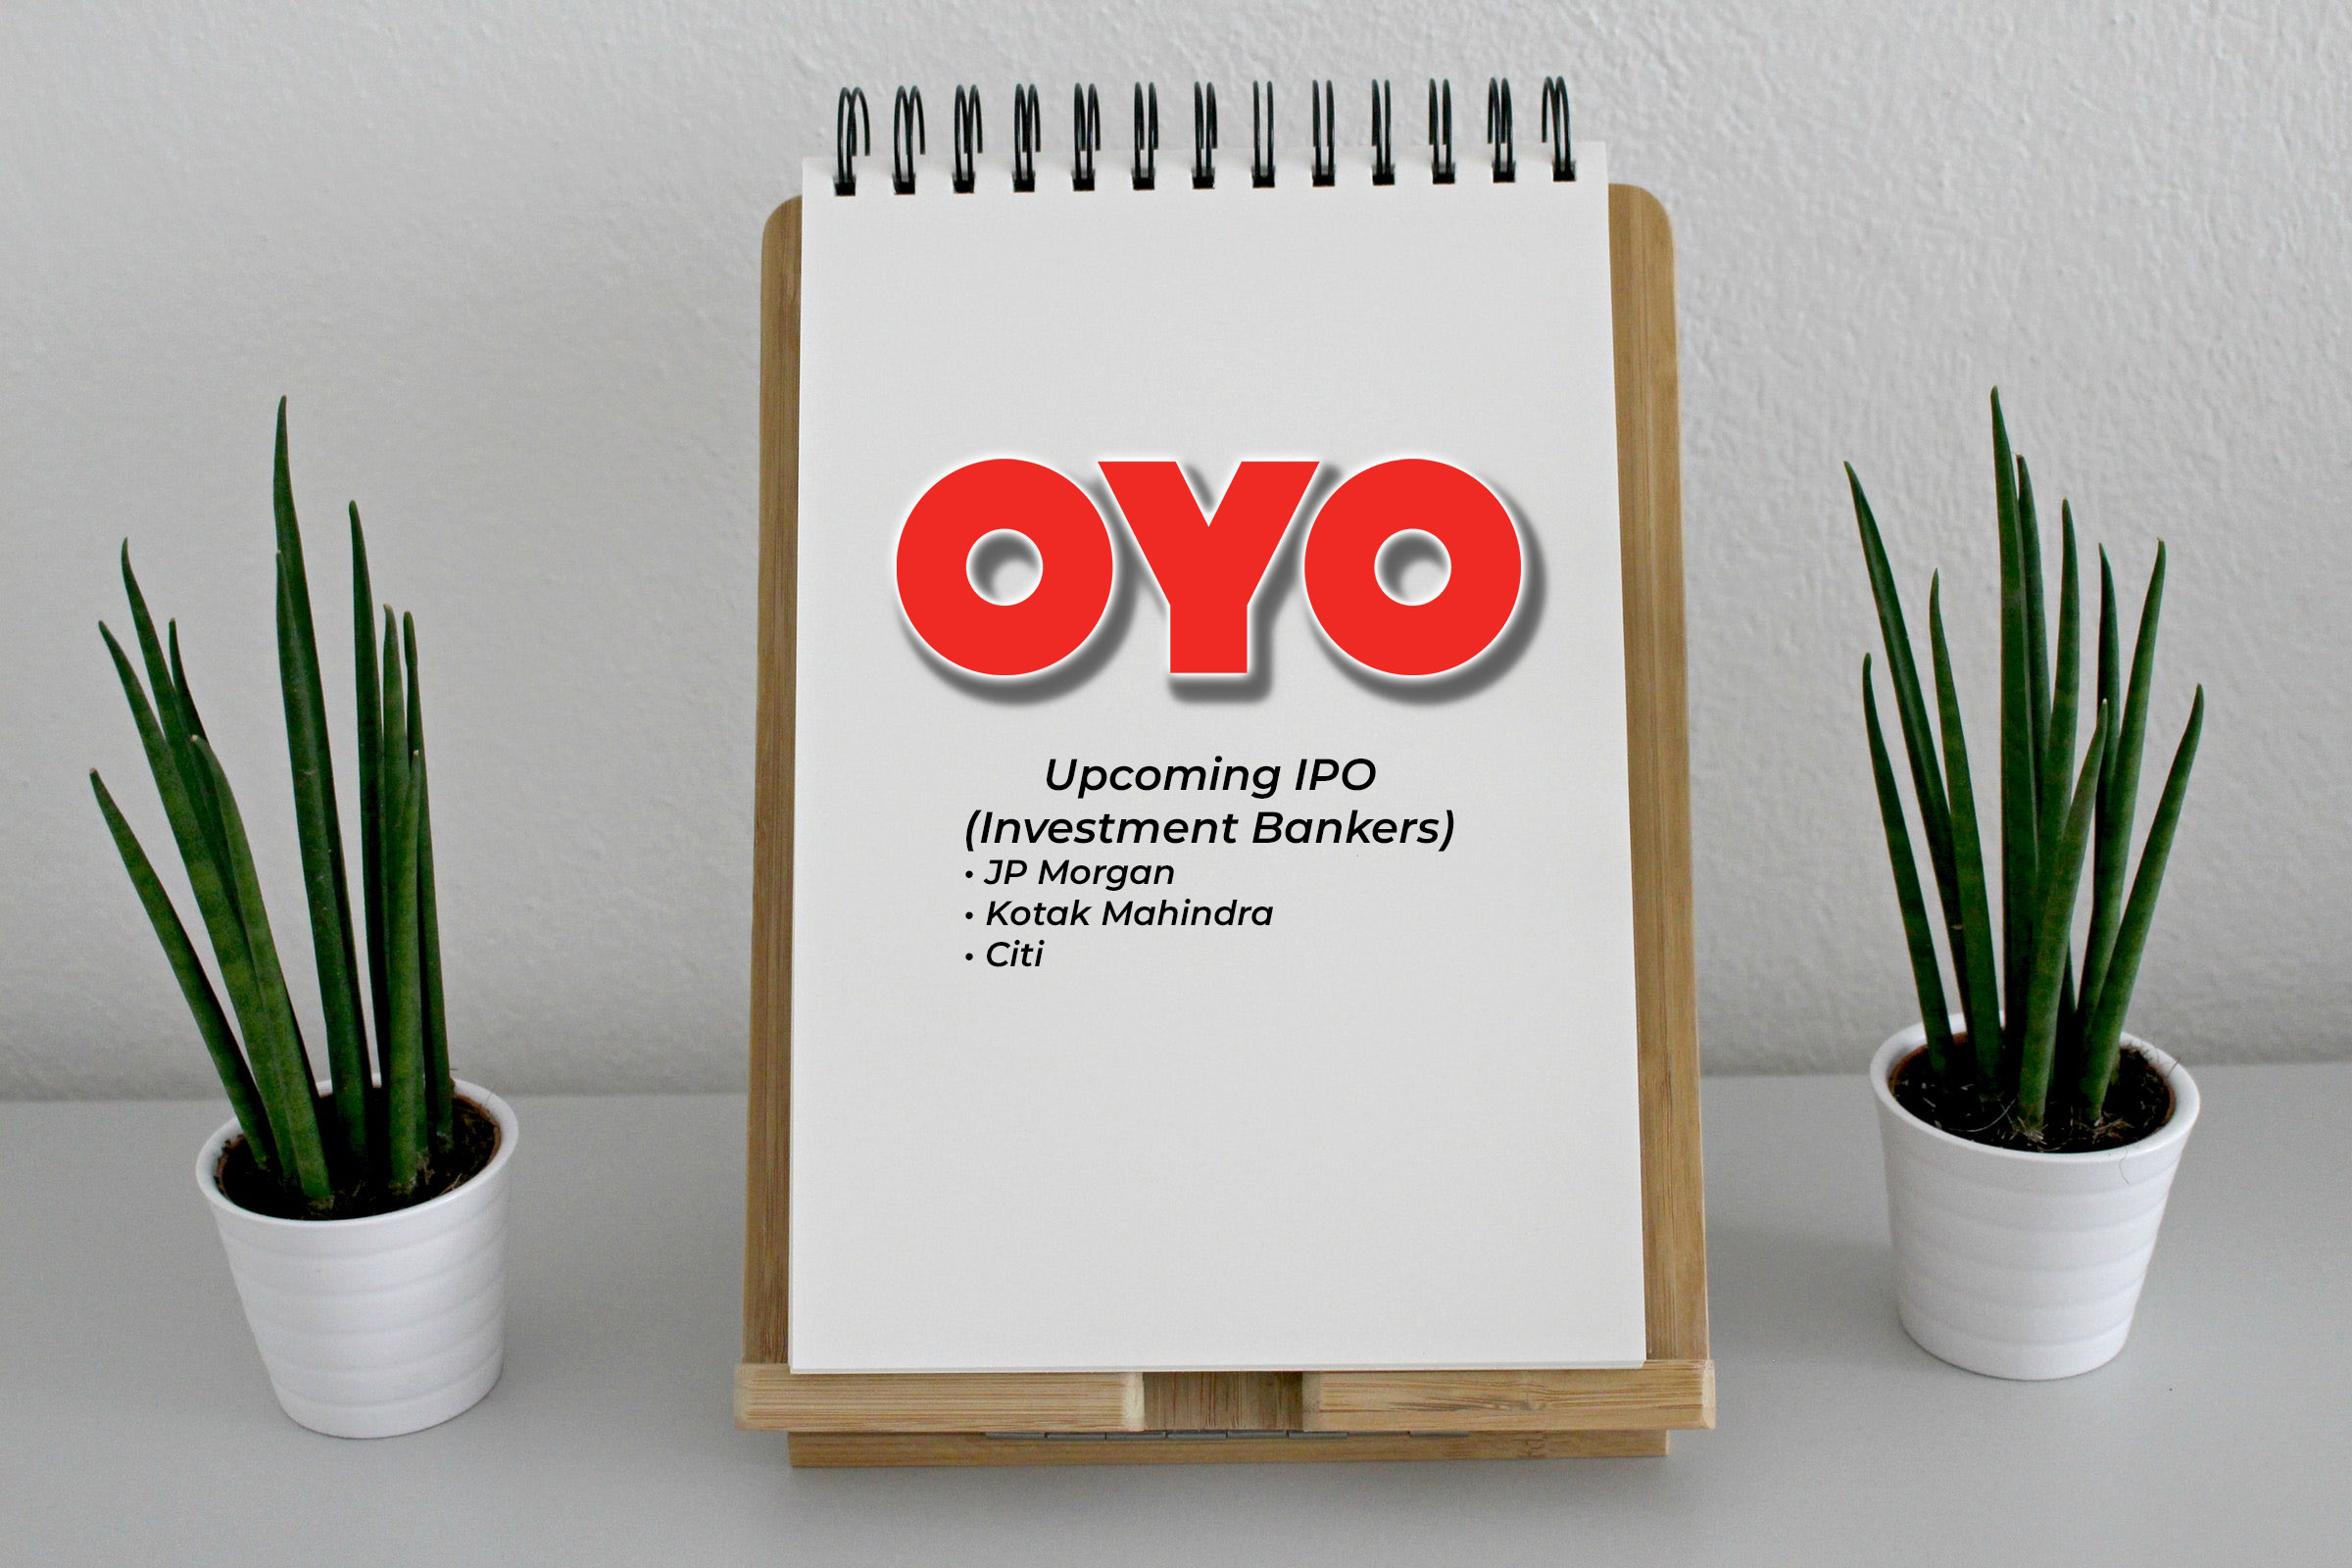 Oyo logo with investment banker names on a Drawing Book